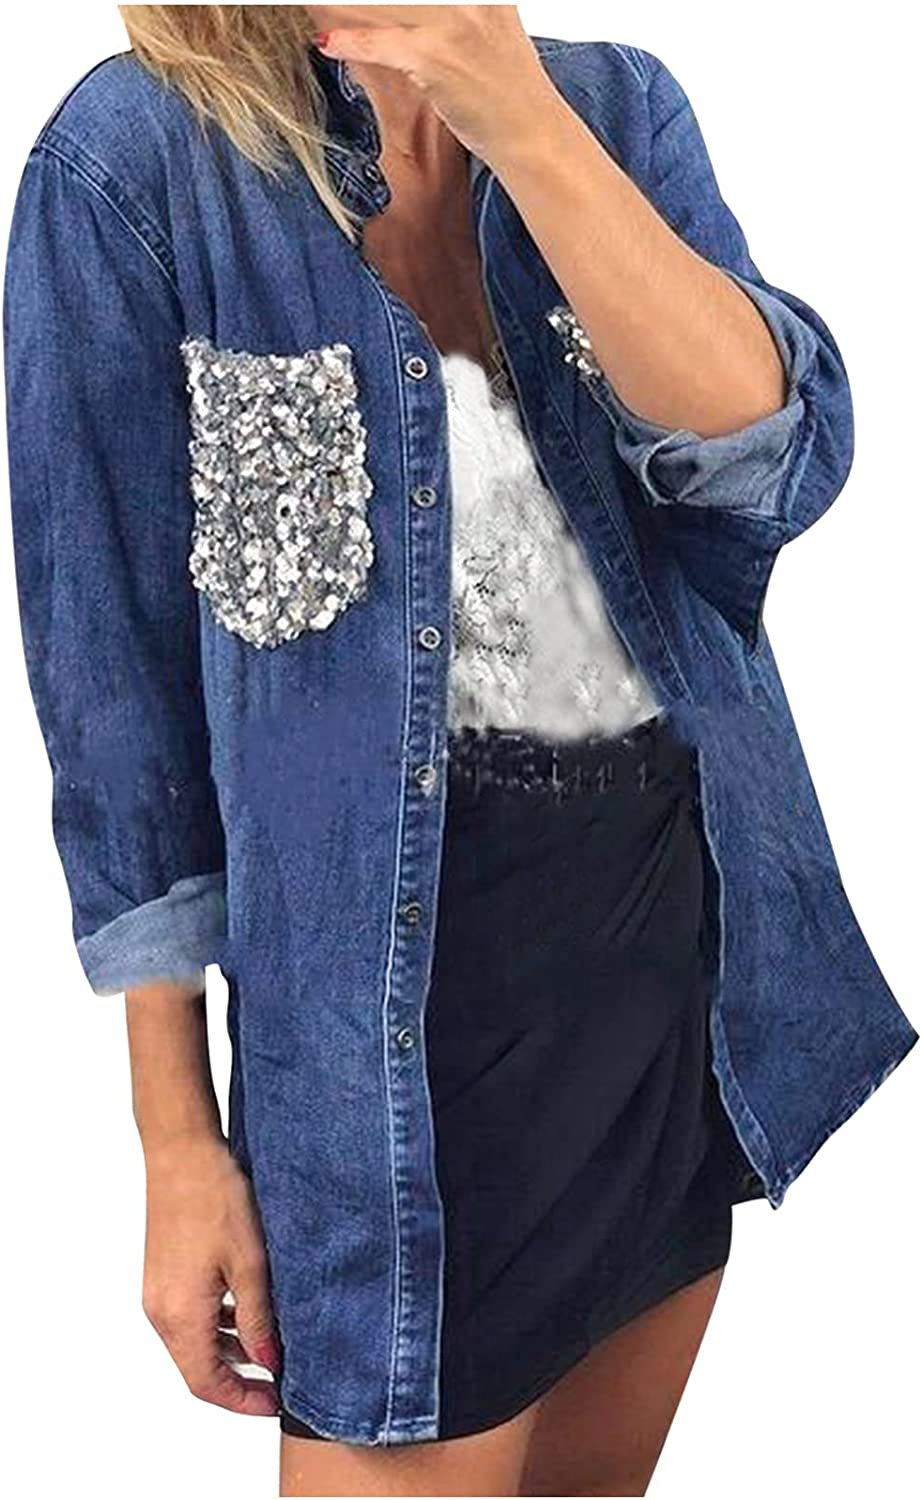 Jean Shirts for Women Denim Open Front Cardigan Long Sleeve Distressed Button Down Blouse Shirts Long Sleeve Tops